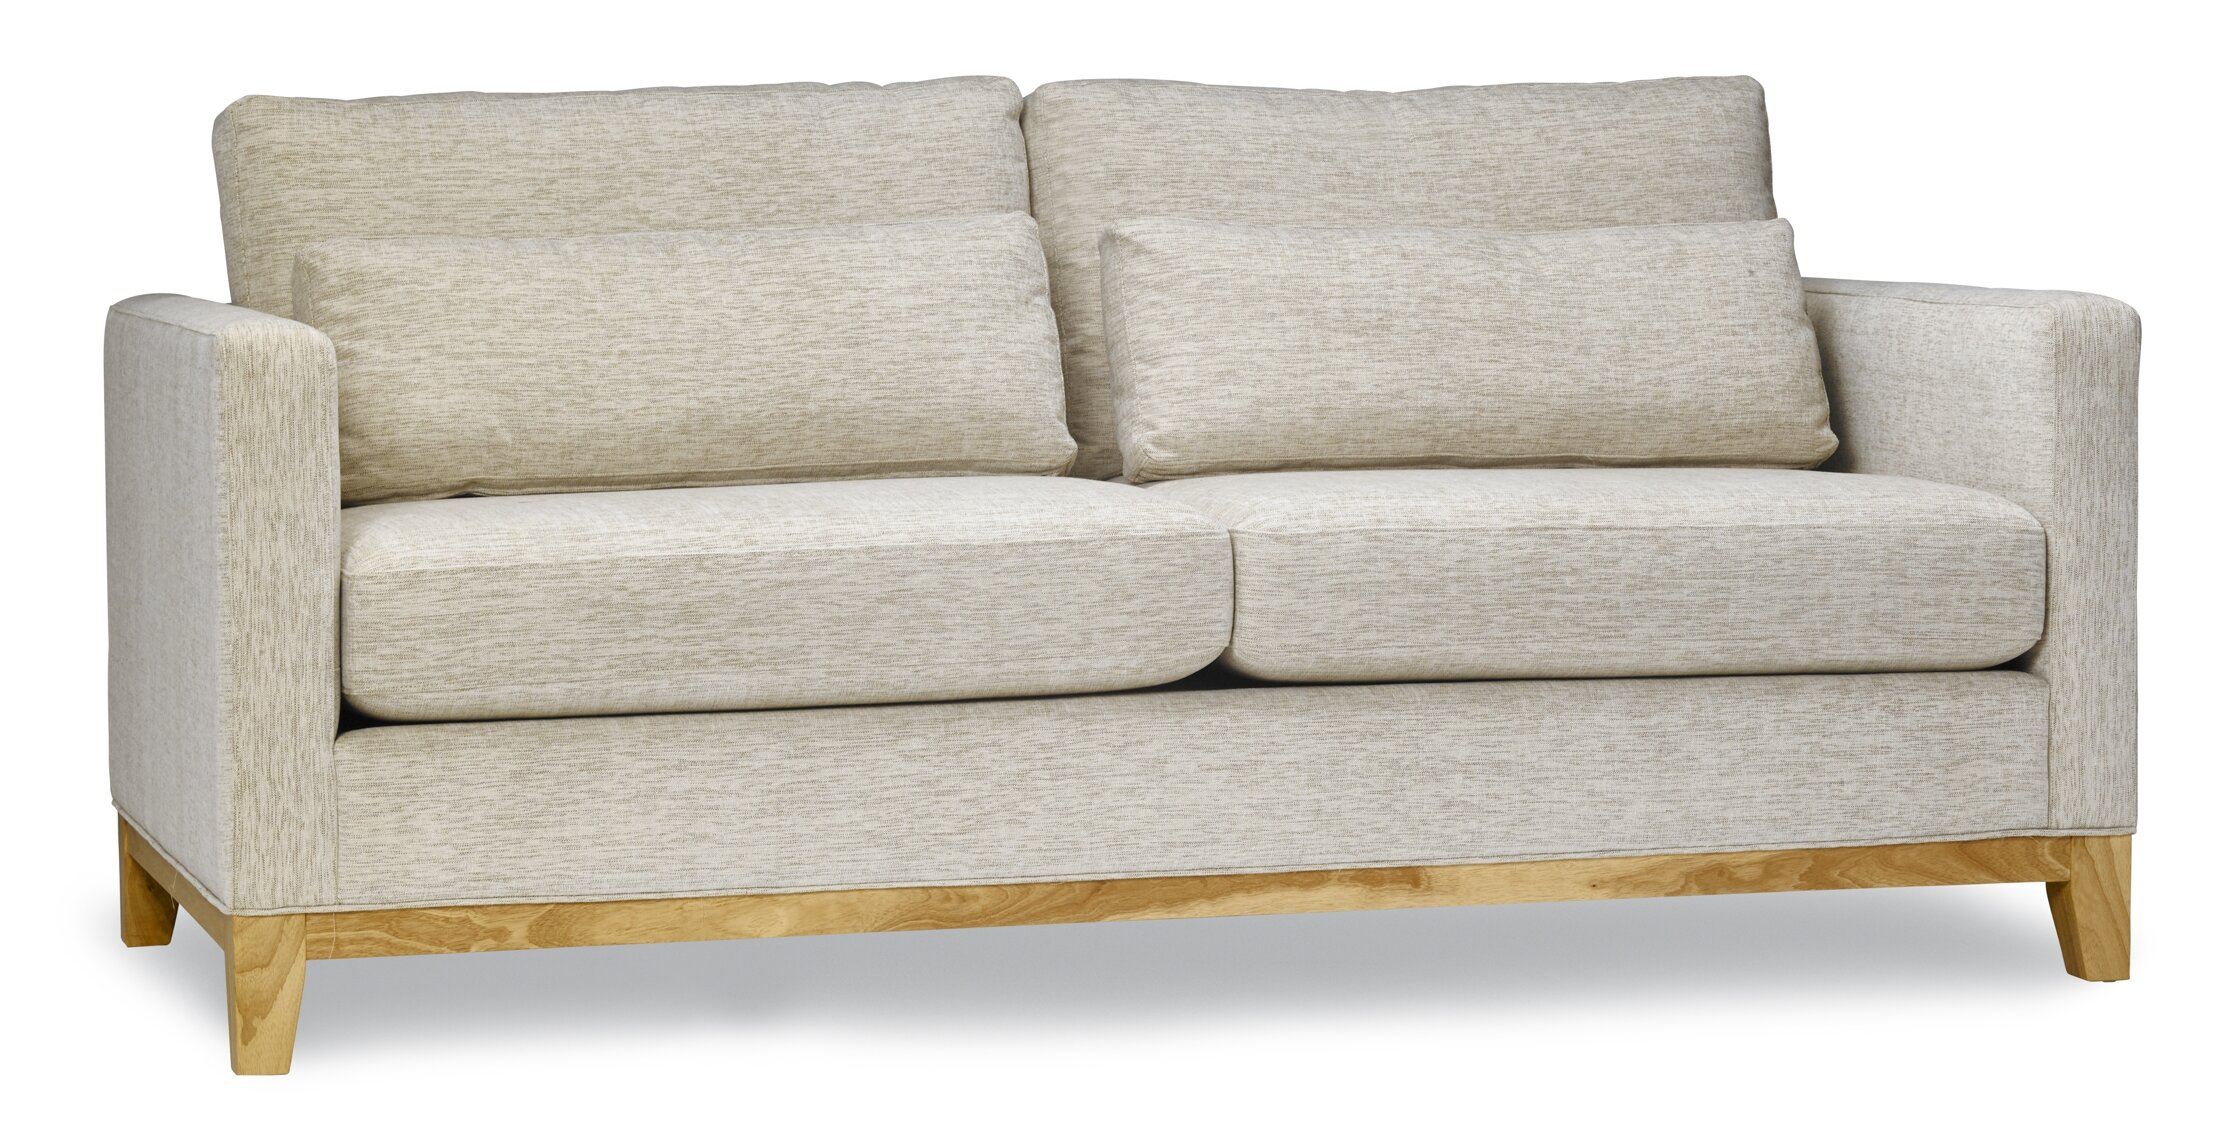 Attrayant Sofas To Go Ben Sofa | Wayfair